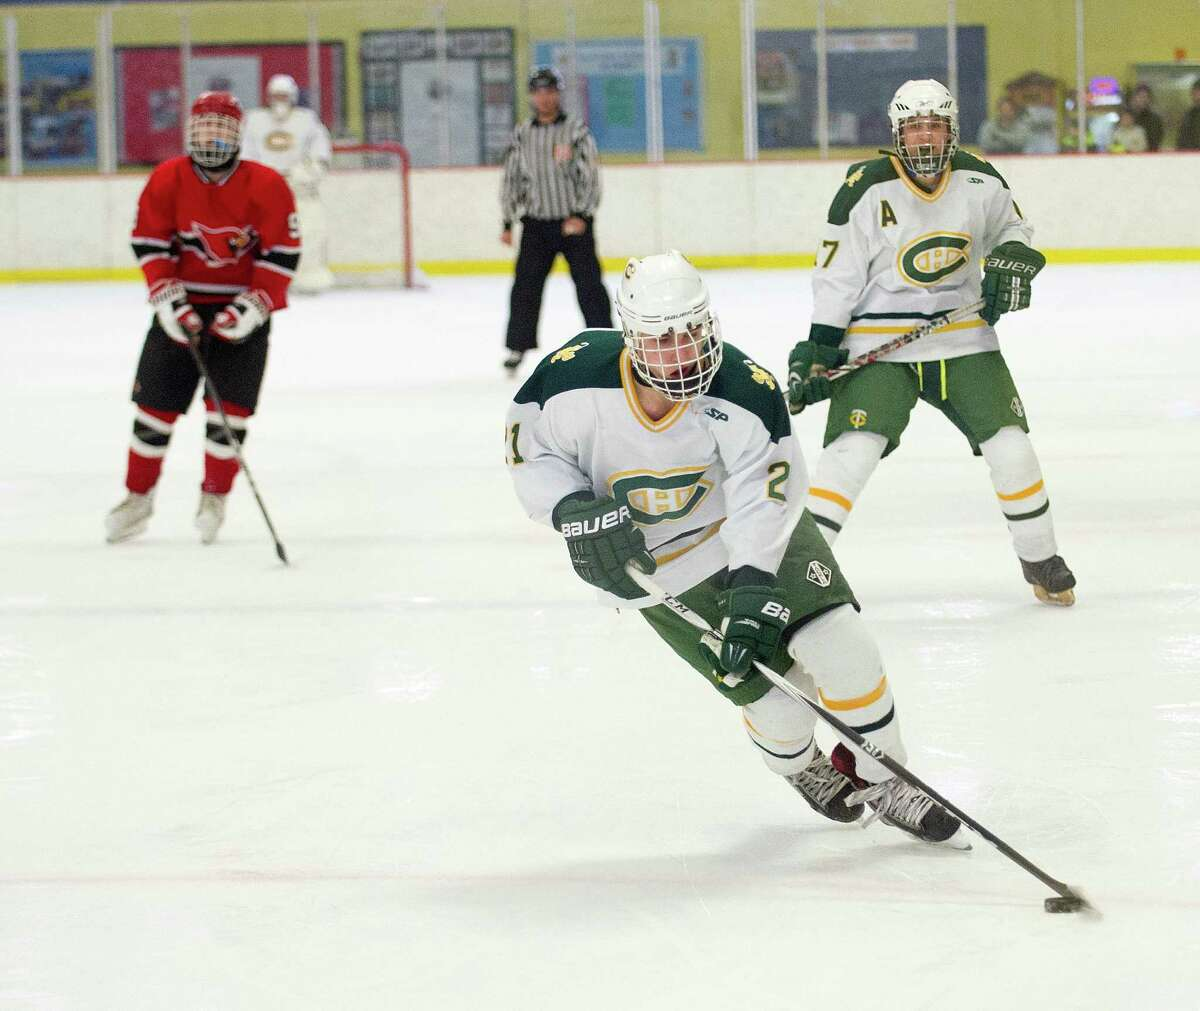 Trinity Catholic's Carmine DeRubeis controls the puck during Saturday's FCIAC quarterfinal against Greenwich at Terry Conners Rink in Stamford, Conn., on March 1, 2014.